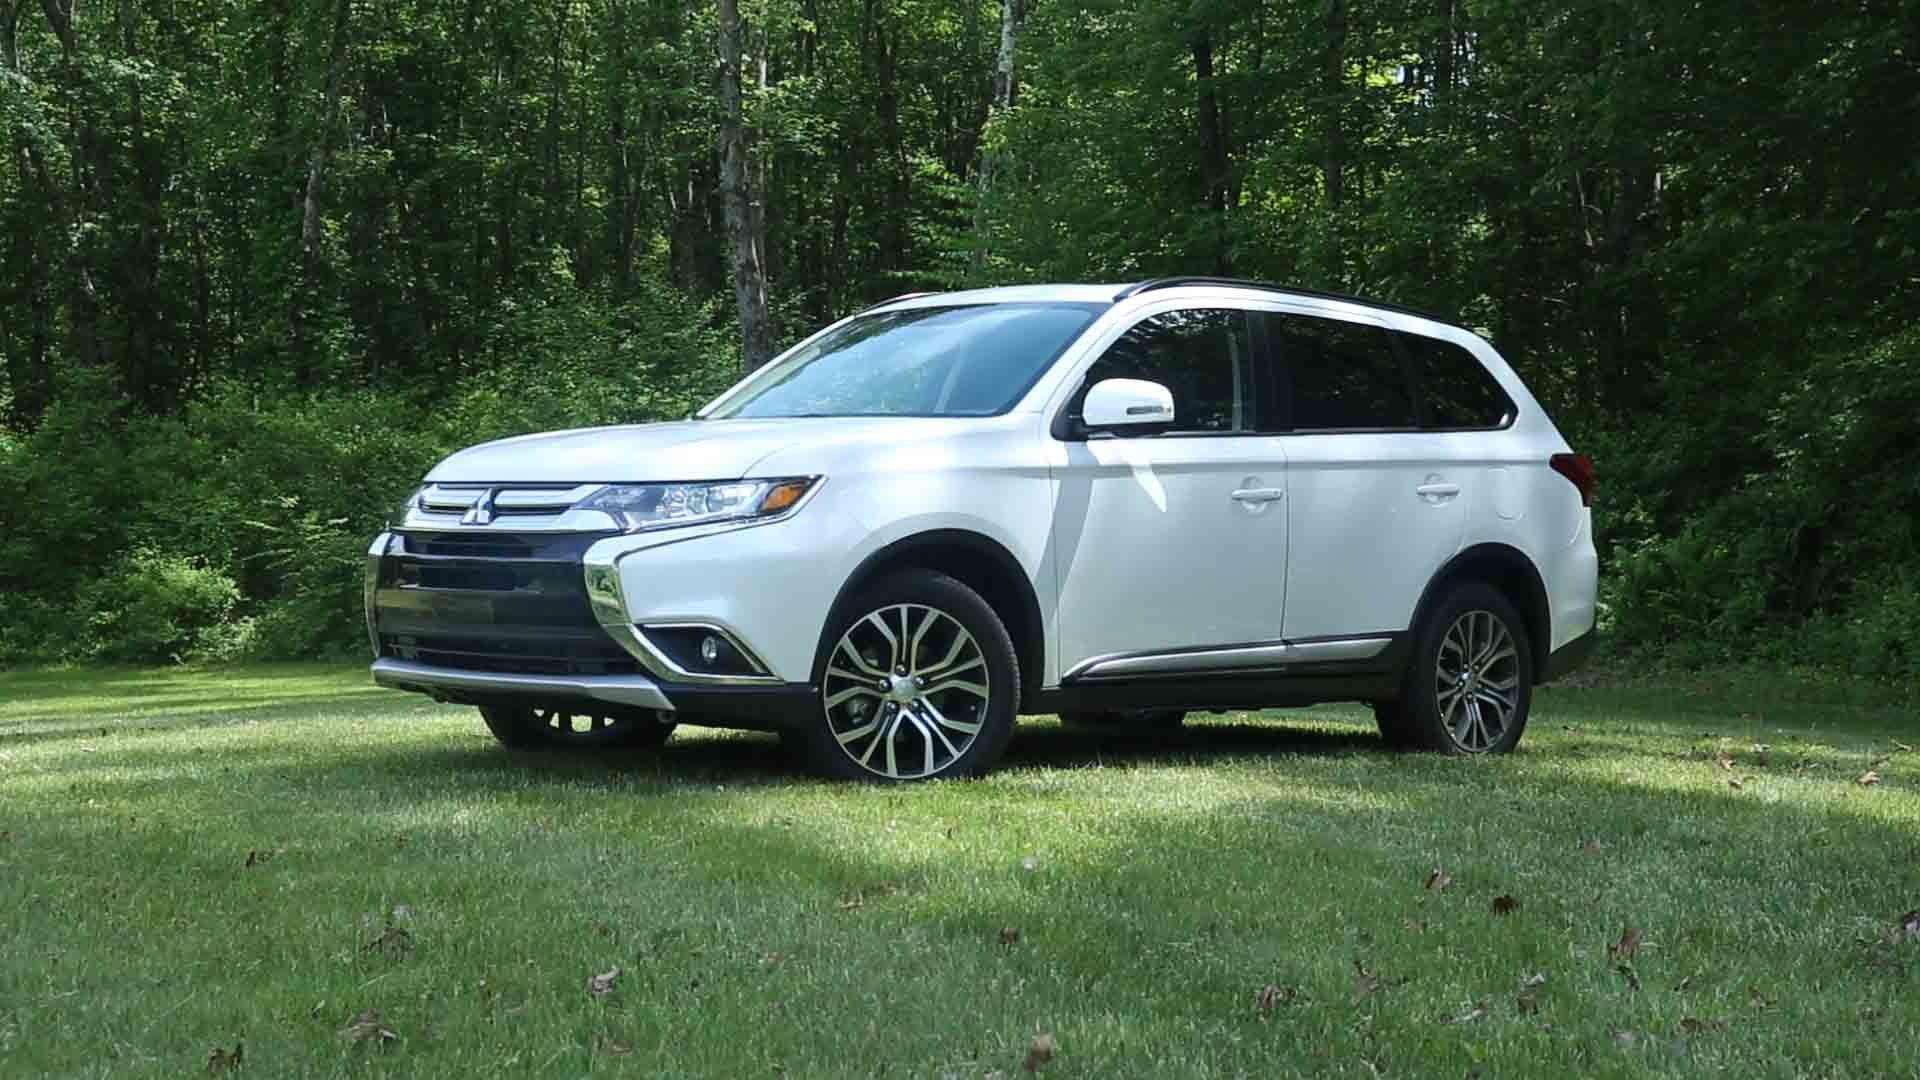 2016 Mitsubishi Outlander Review  Consumer Reports